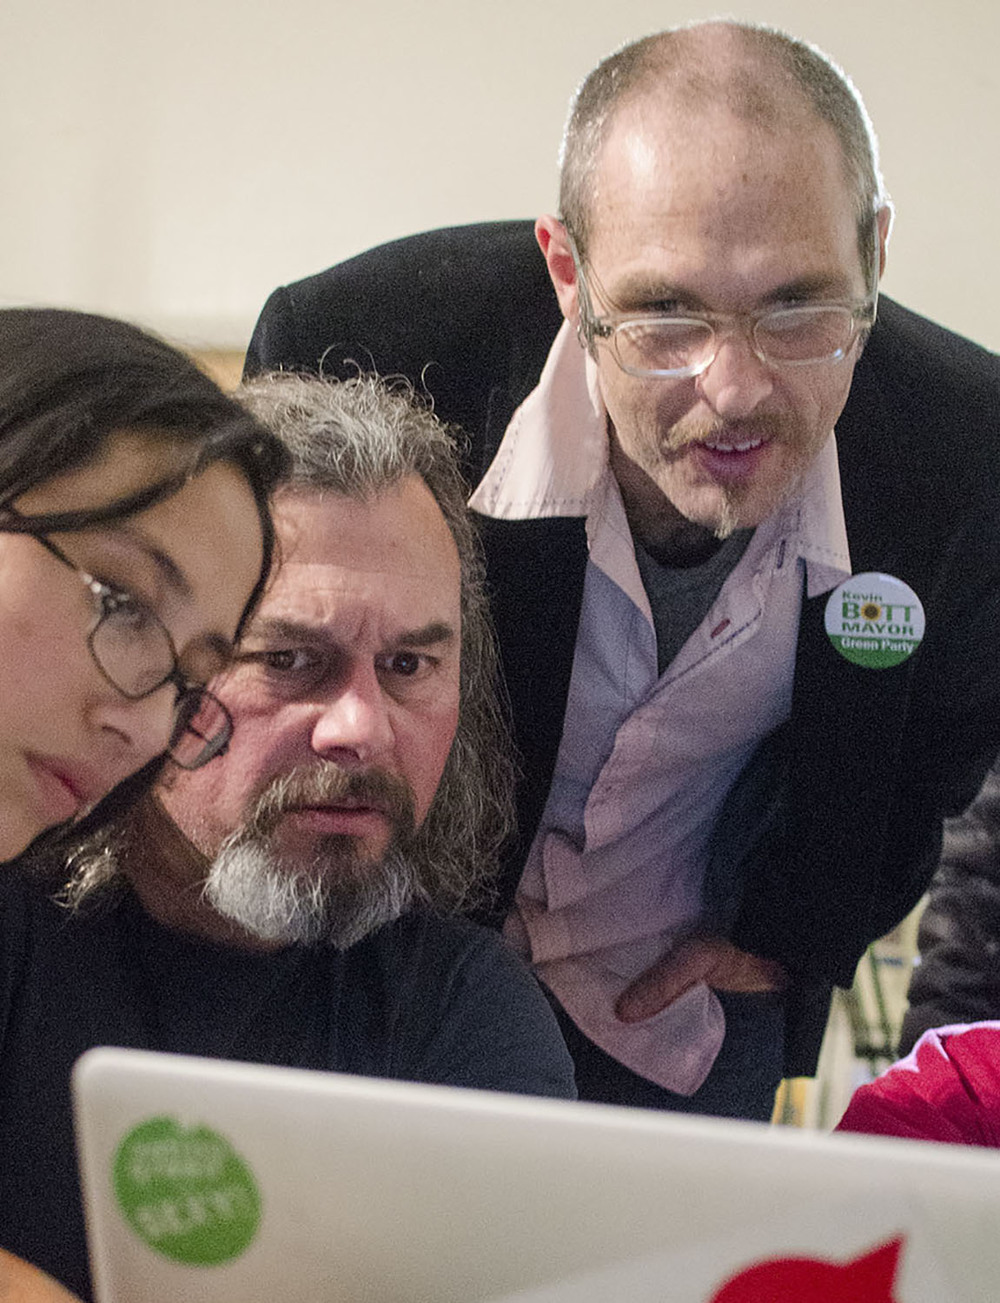 At the end of Election Day 2013, Bott reviews the voting results alongside Green Party supporters Maria Ordonez, 24, and Dave Kashmer, 56.